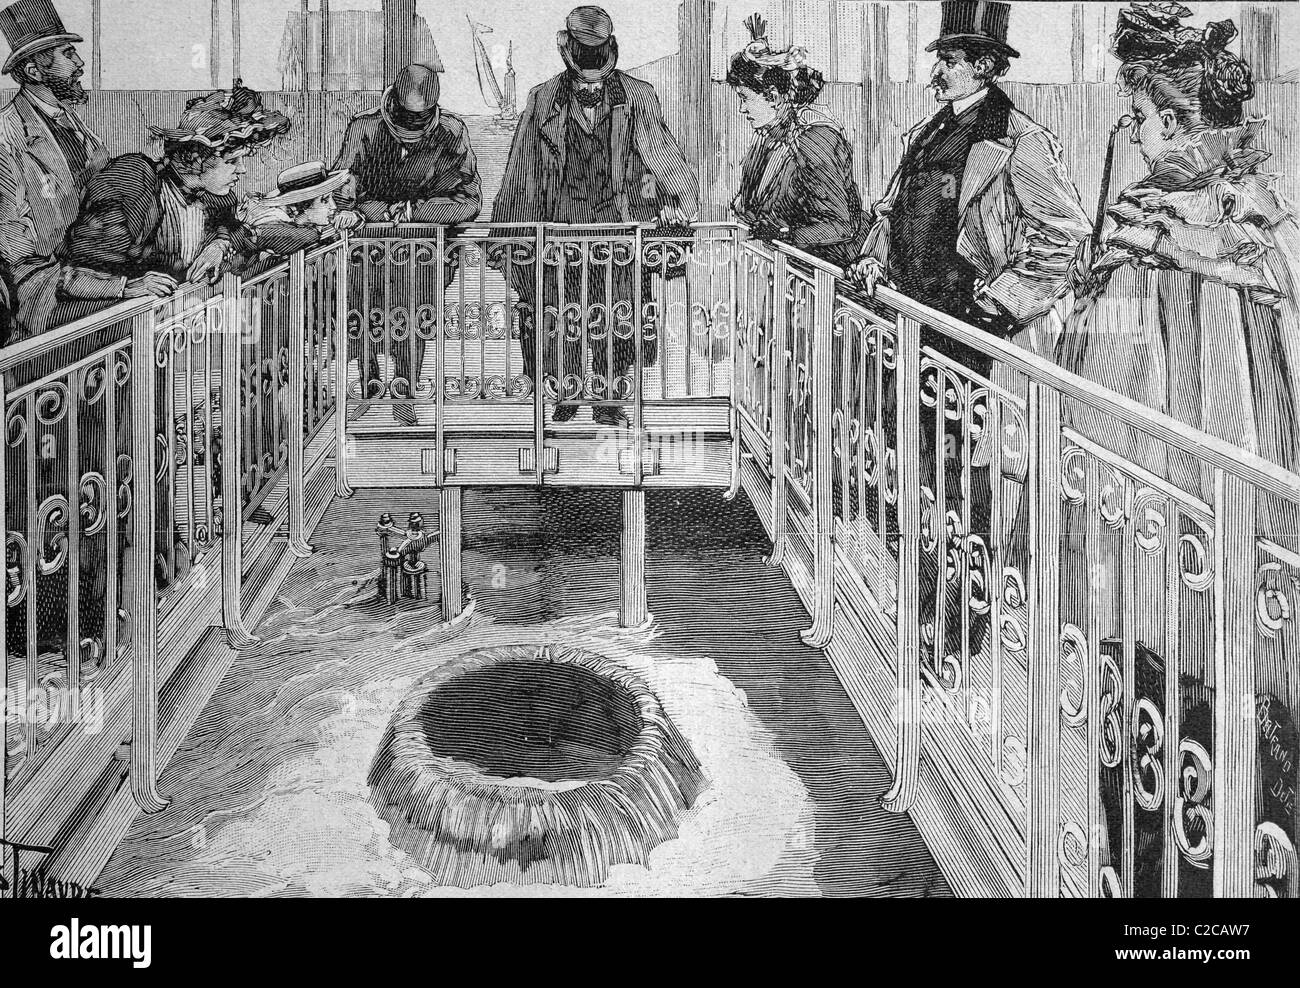 Inauguration of the new water supply line, Paris, France, historical picture, about 1893 - Stock Image